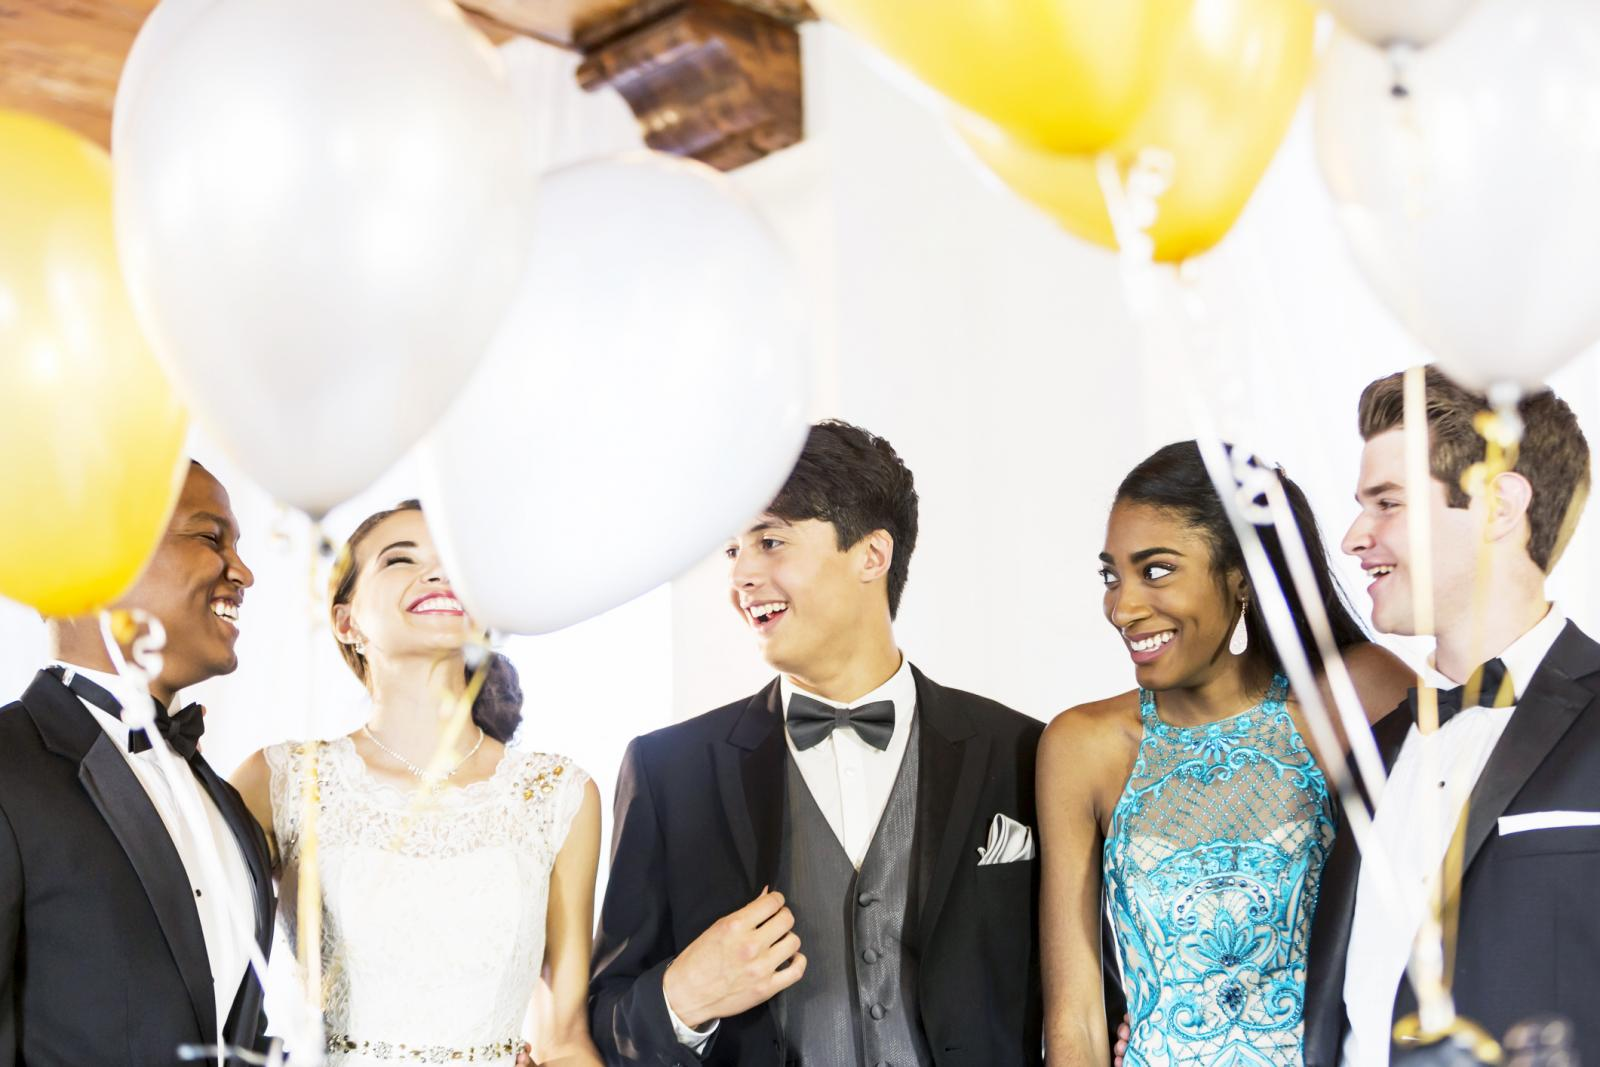 Teenagers in formalwear at party